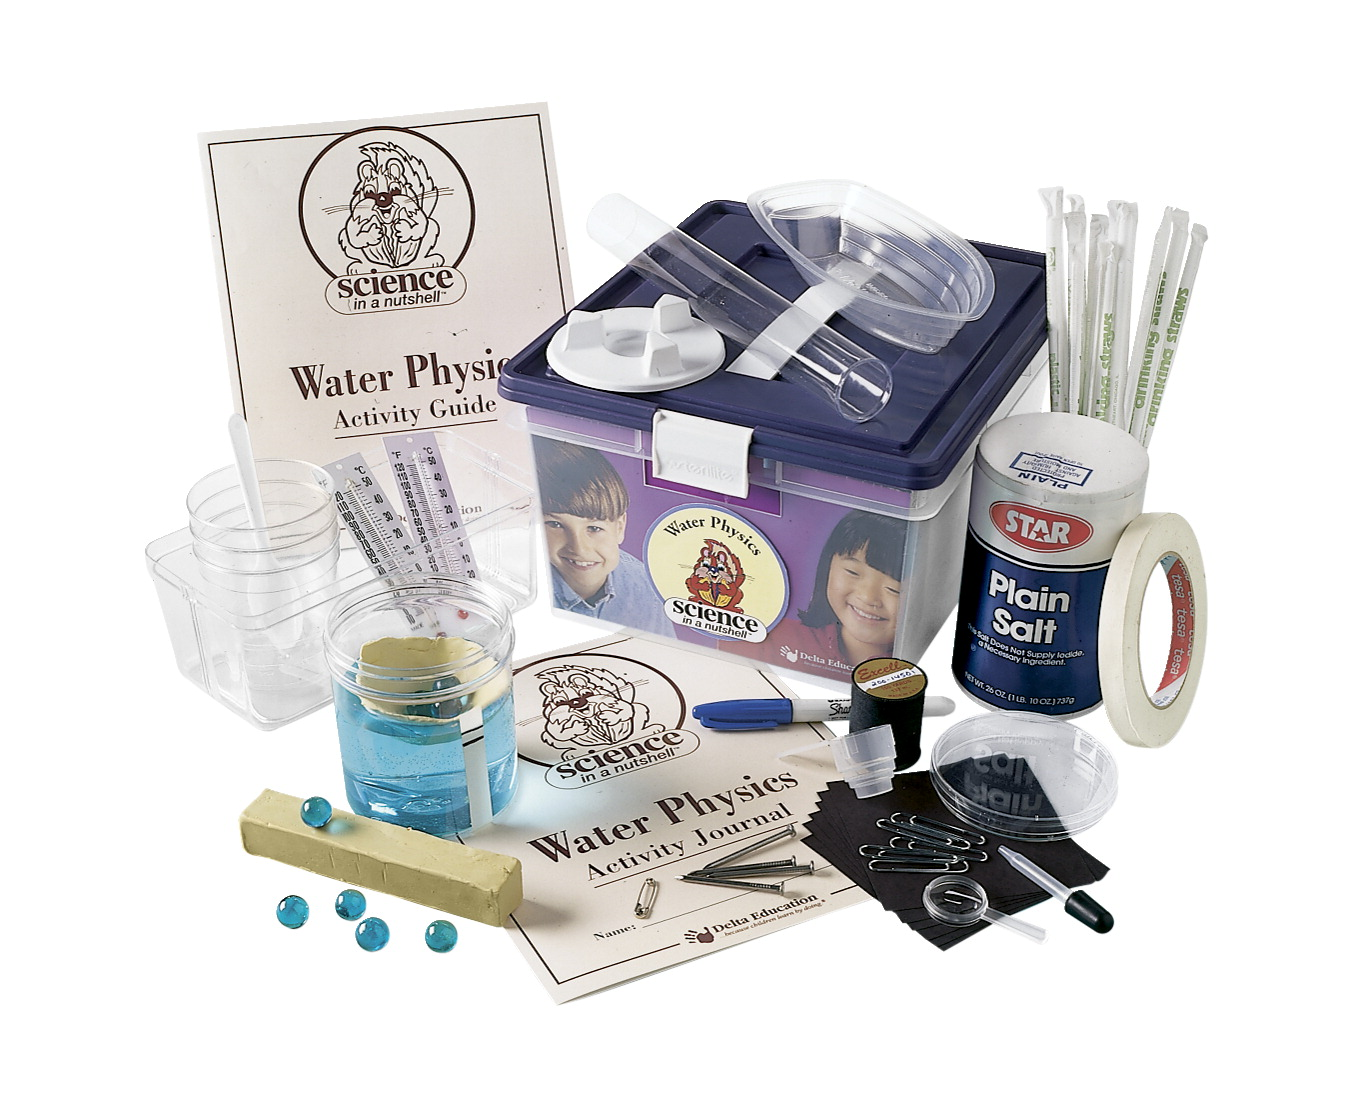 Delta Science in a Nutshell Water Physics Kit